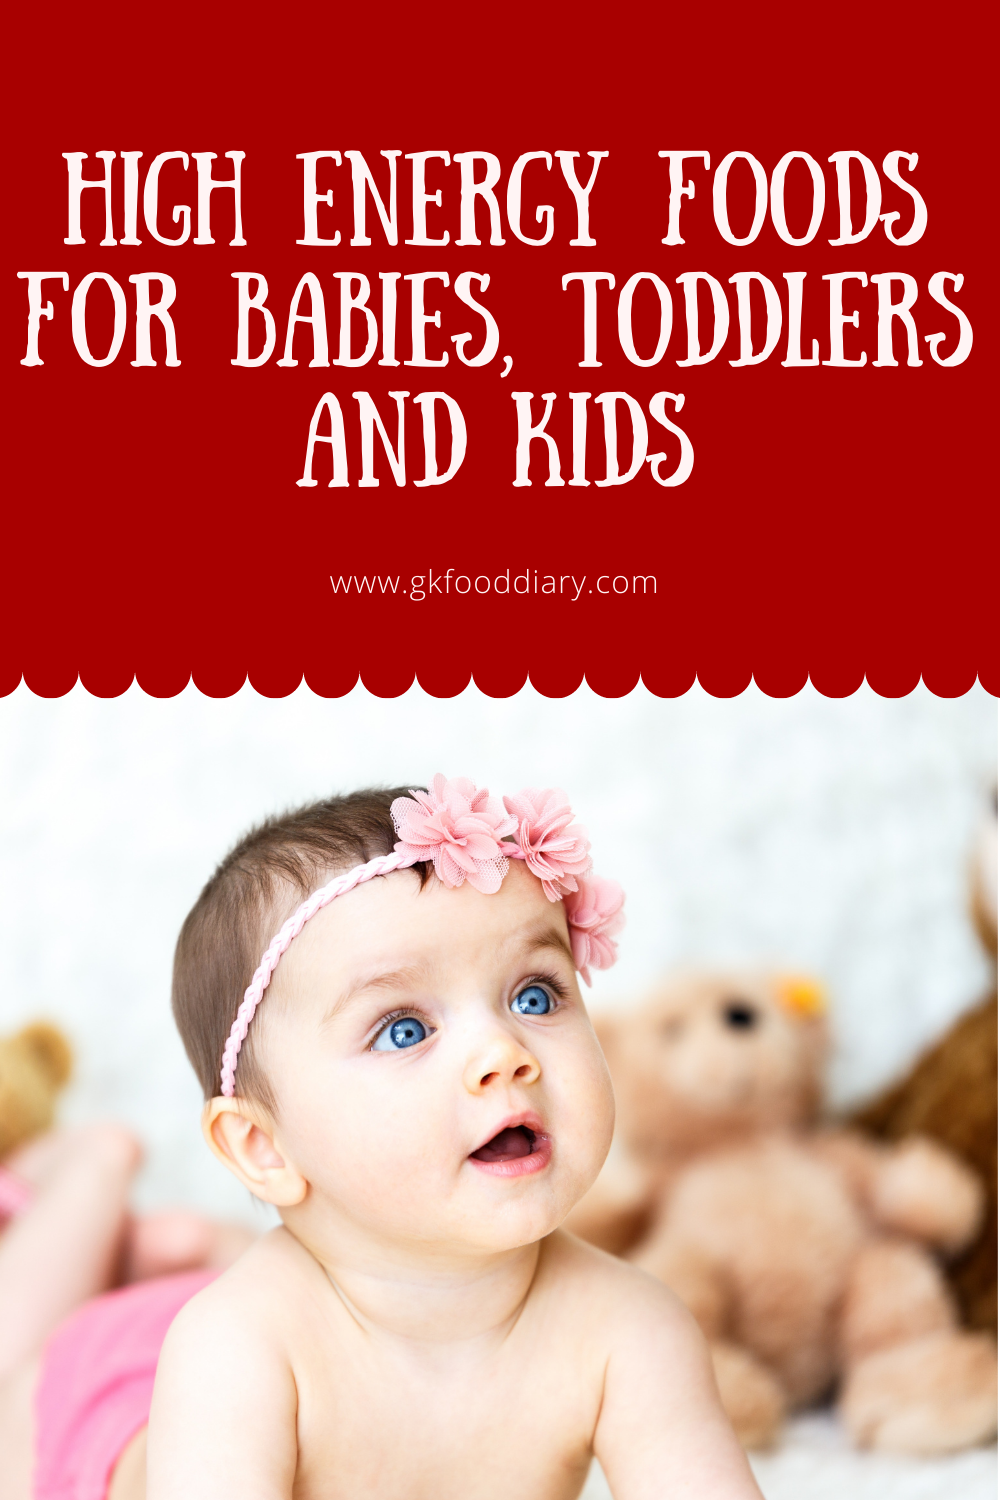 High Energy foods for babies, Toddlers and kids